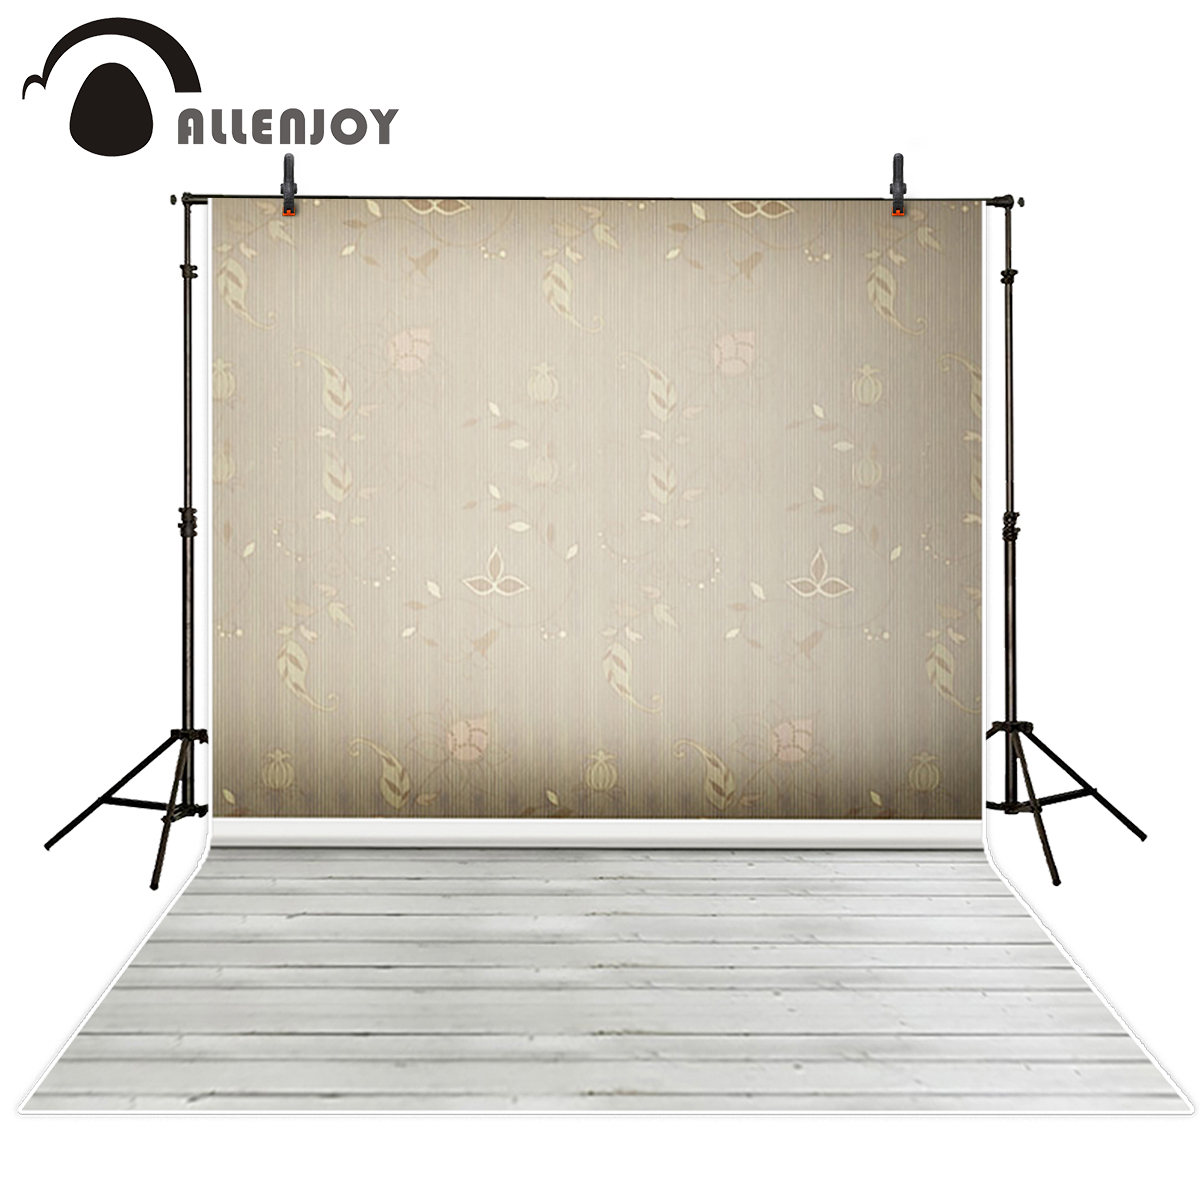 Allenjoy flower pattern wall wood floor photography backdrops stripes board vintage wallpaper background photo studio props shengyongbao 300cm 200cm vinyl custom photography backdrops brick wall theme photo studio props photography background brw 12